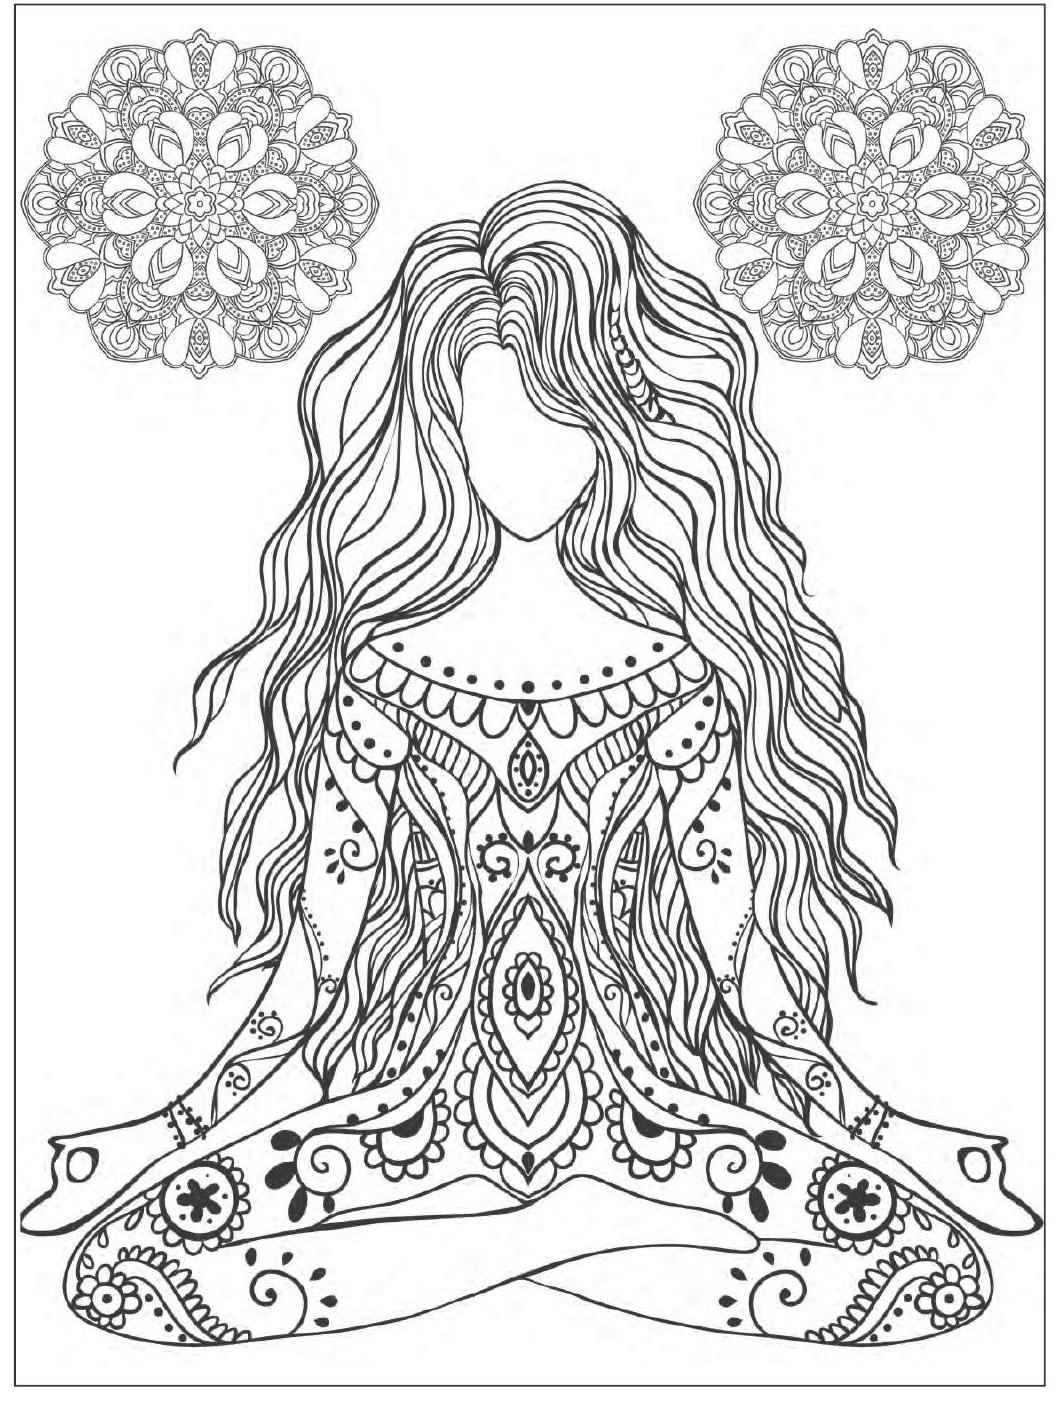 1064x1427 Yoga Meditation Coloring Book For Adults With Yoga Poses